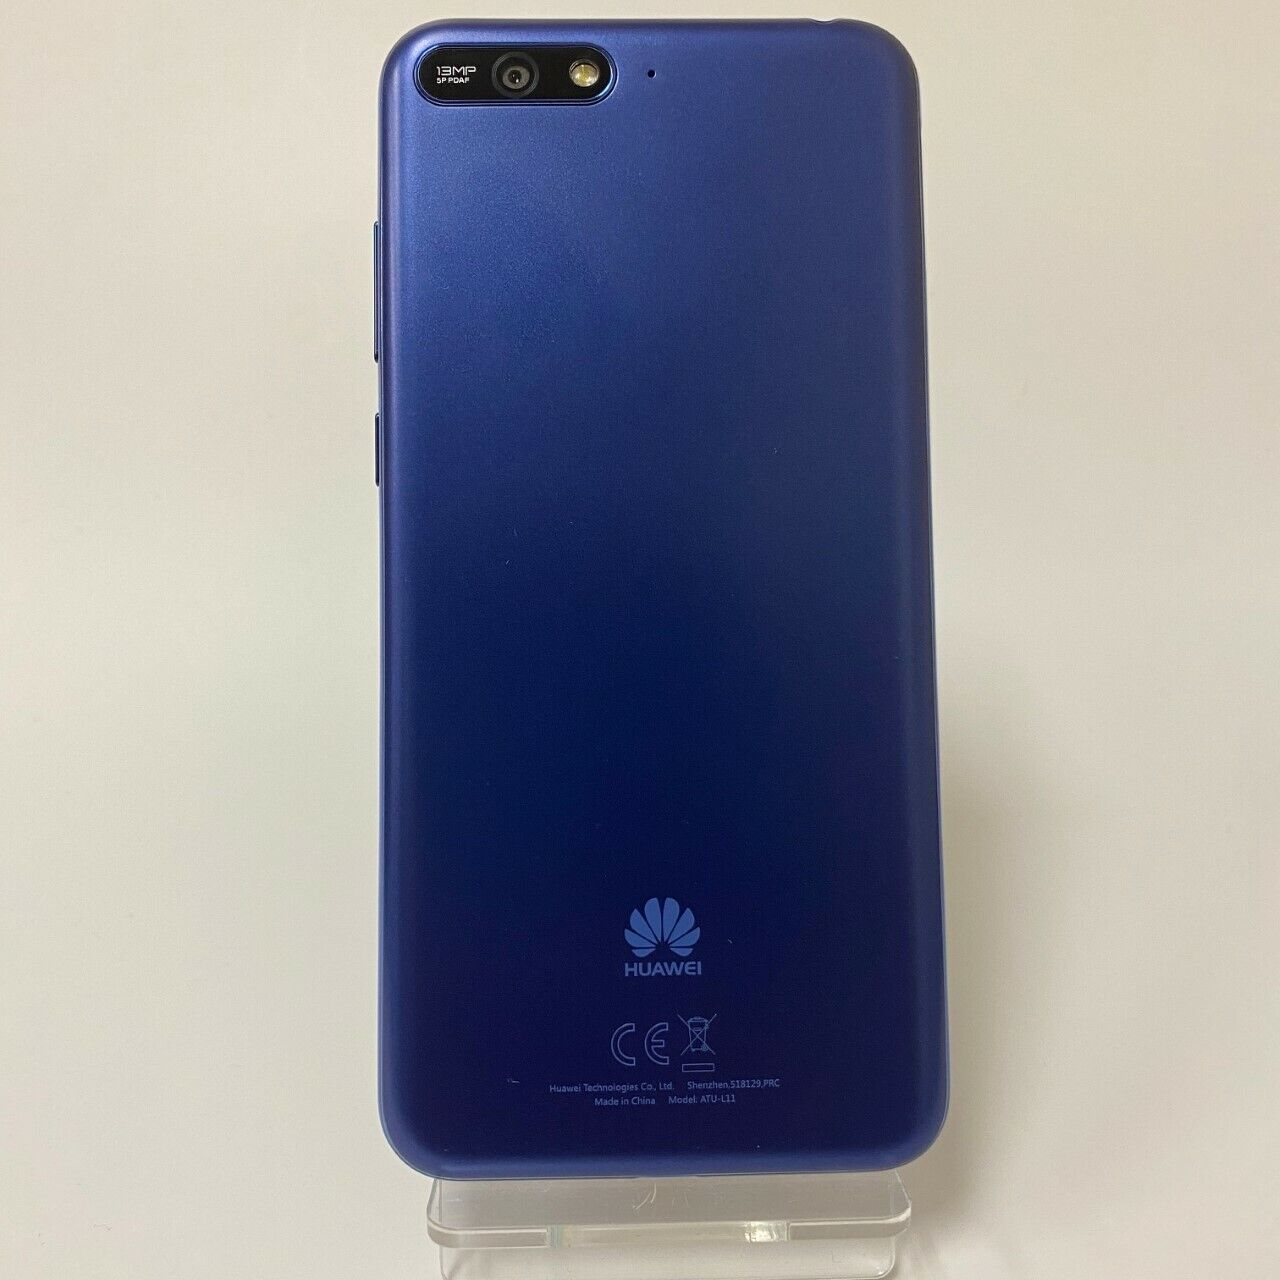 Android Phone - HUAWEI Y6 (2018) 16GB - UNLOCKED - Black / Blue  - Smartphone Mobile Phone